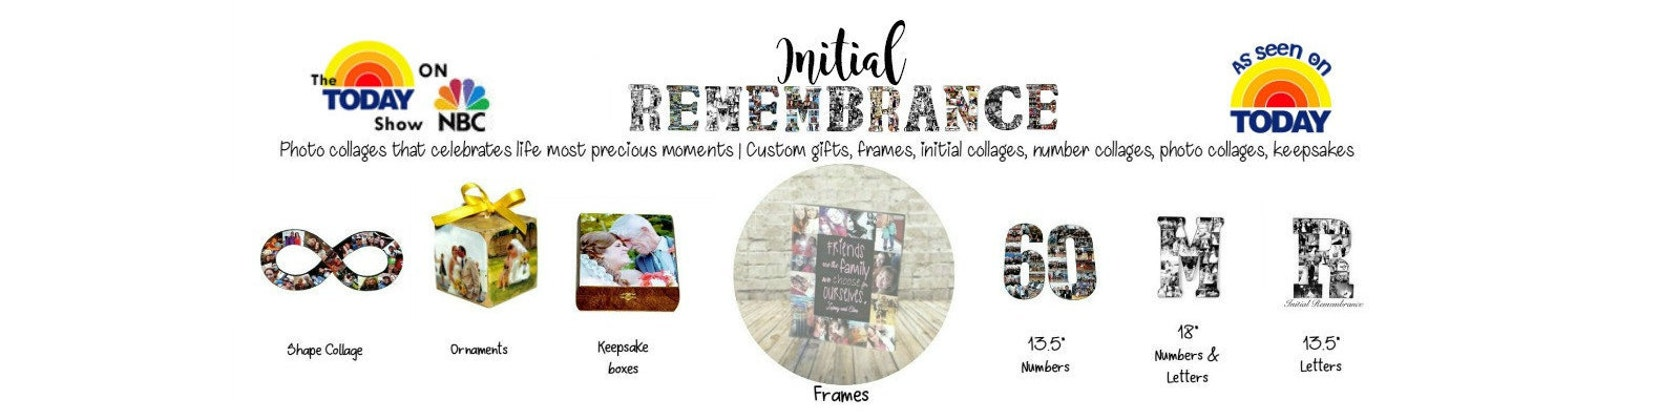 Photo Keepsake Gifts As seen on the TODAY von InitialRemembrance